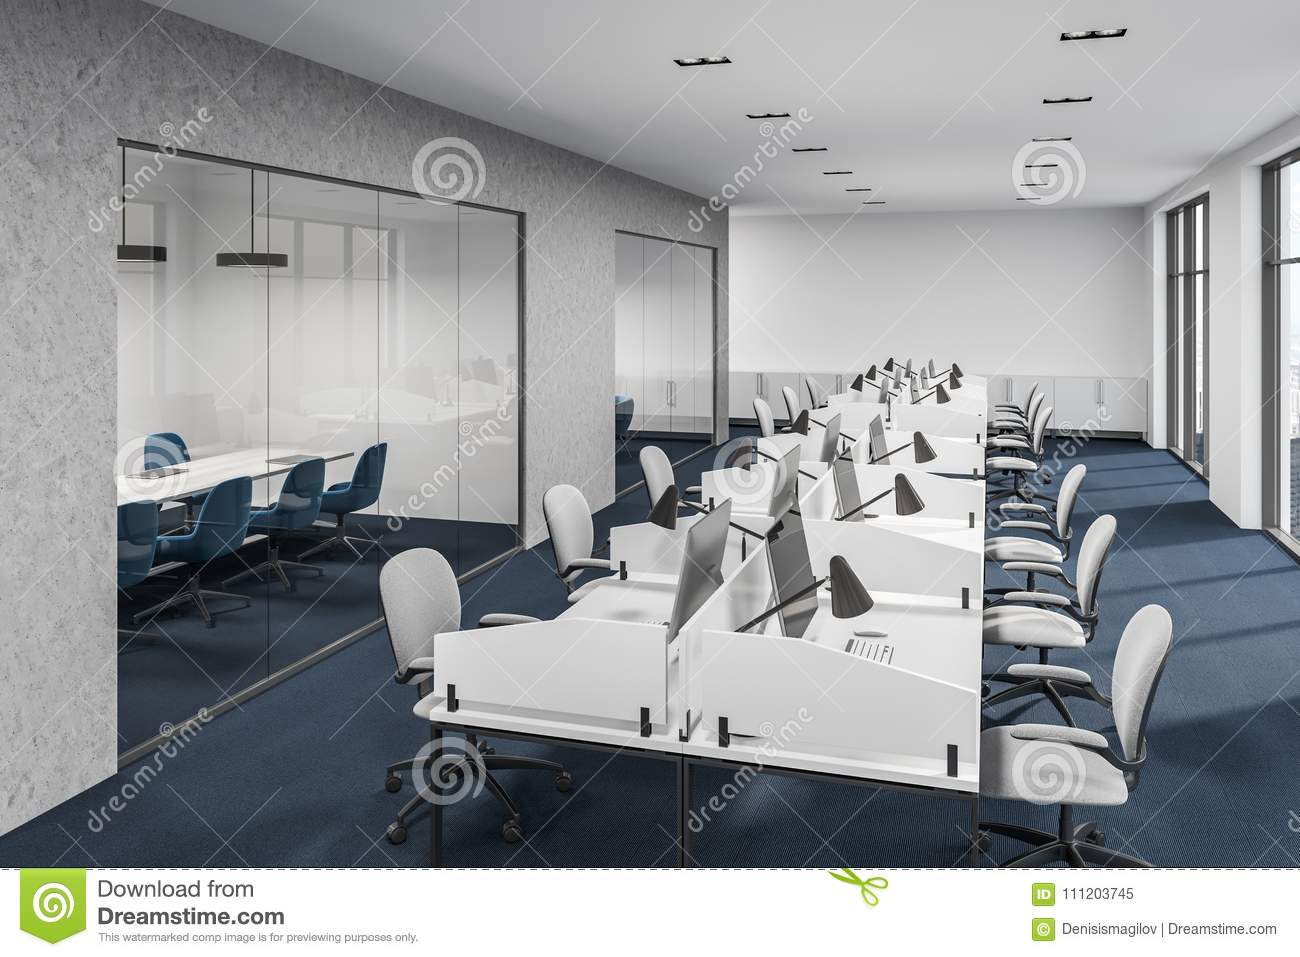 Download Concerete And White Loft Office Meeting Room Stock Illustration